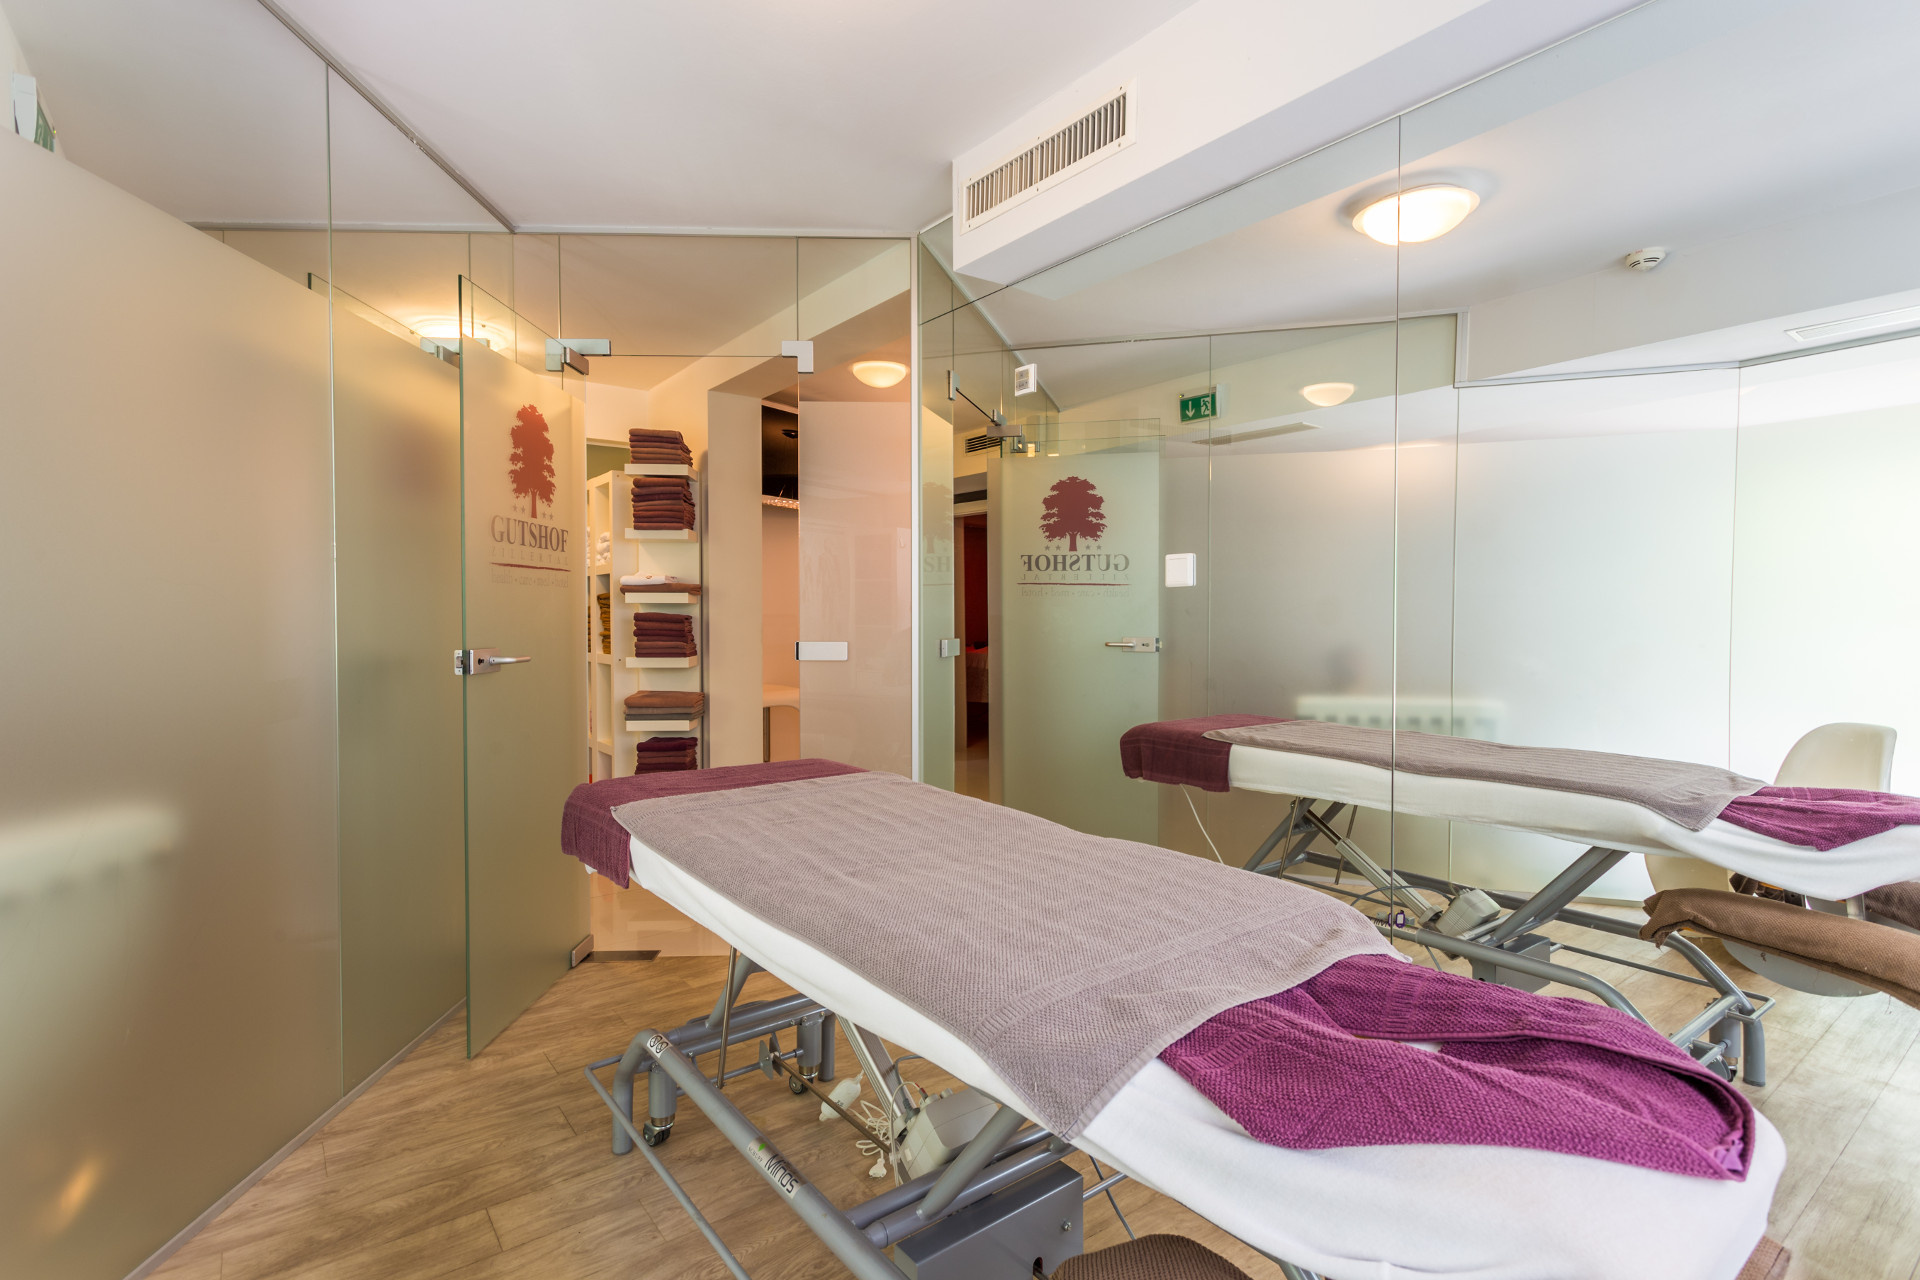 Massage room, Gutshof Zillertal Hotel (photo)